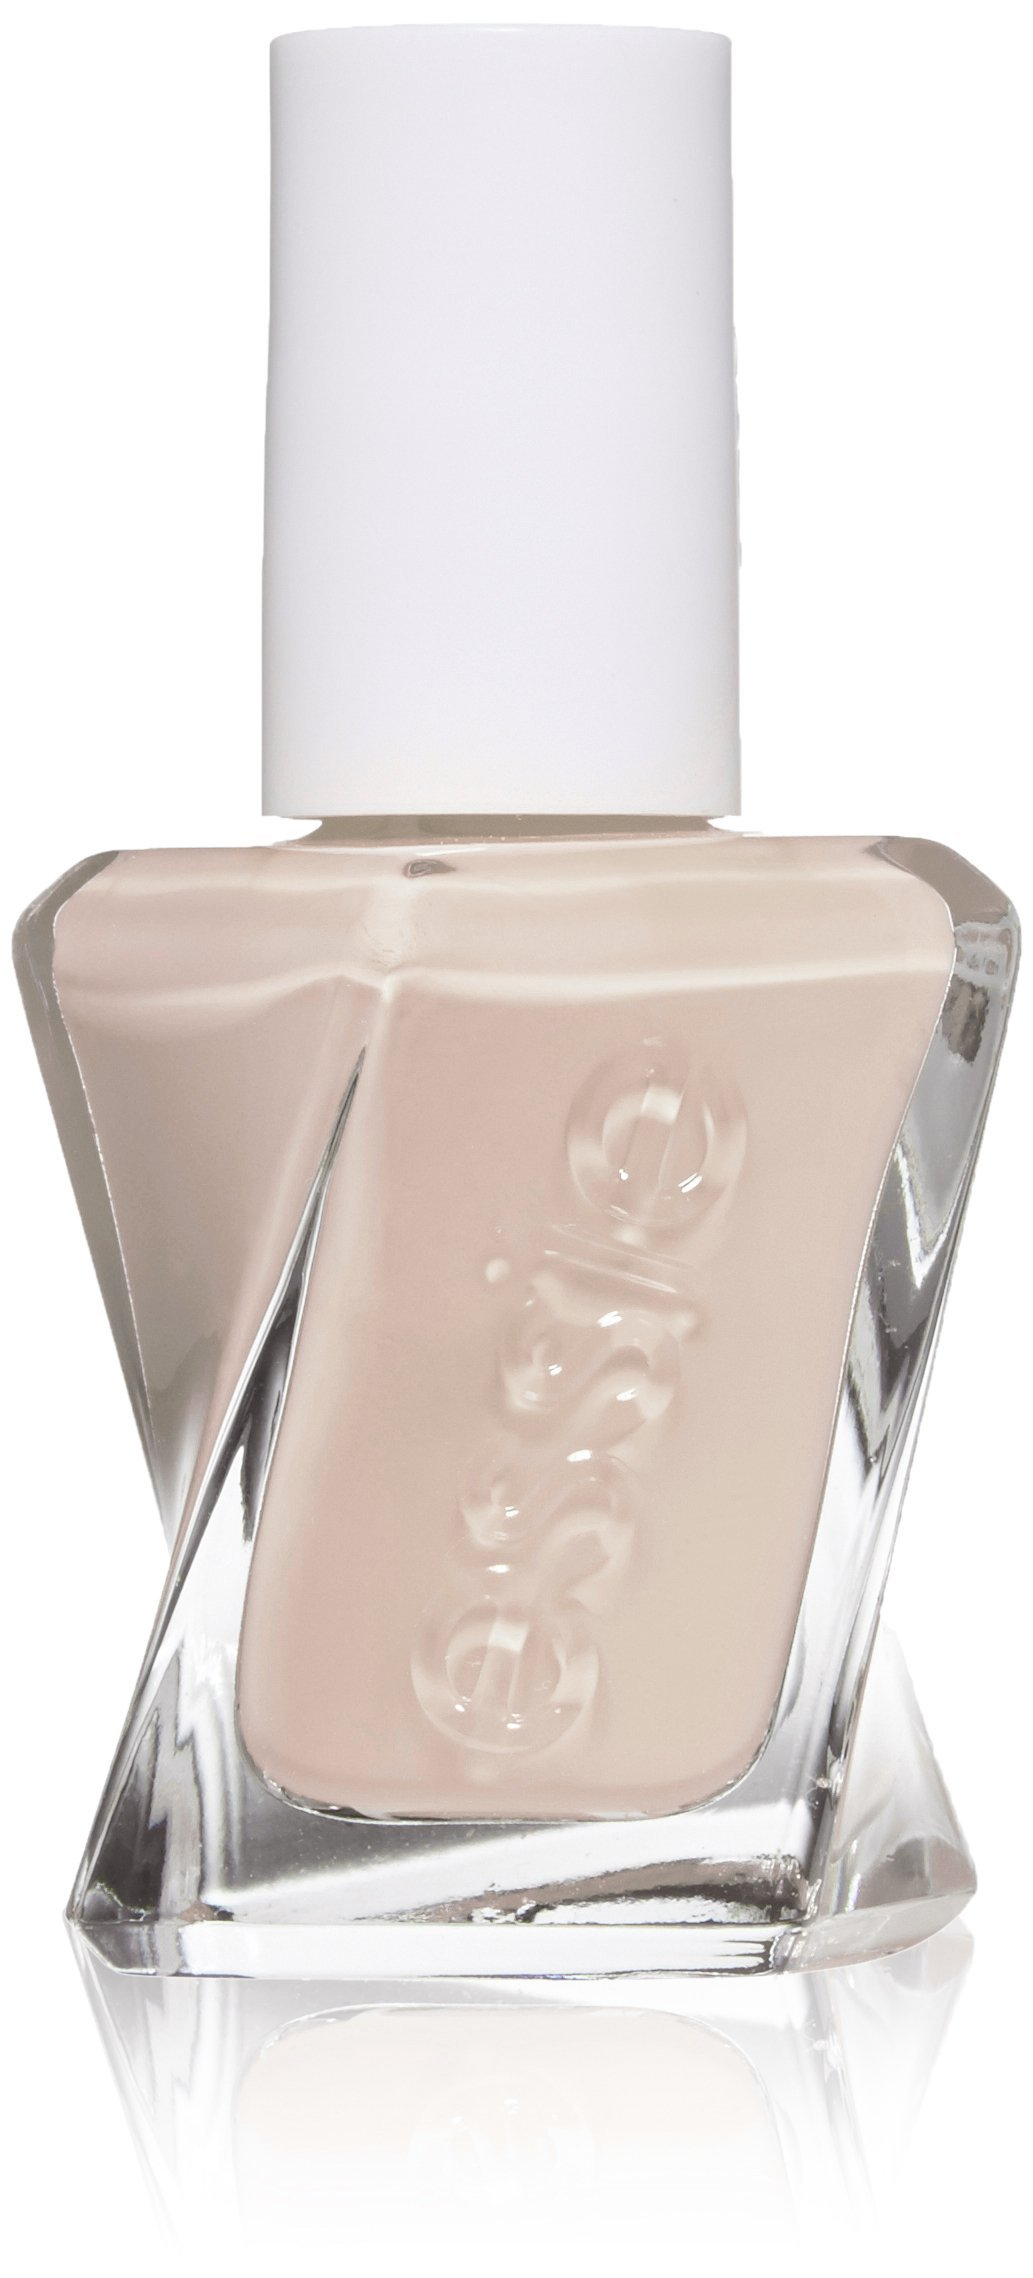 Amazon.com : essie gel couture nail polish, matter of fiction, pink ...